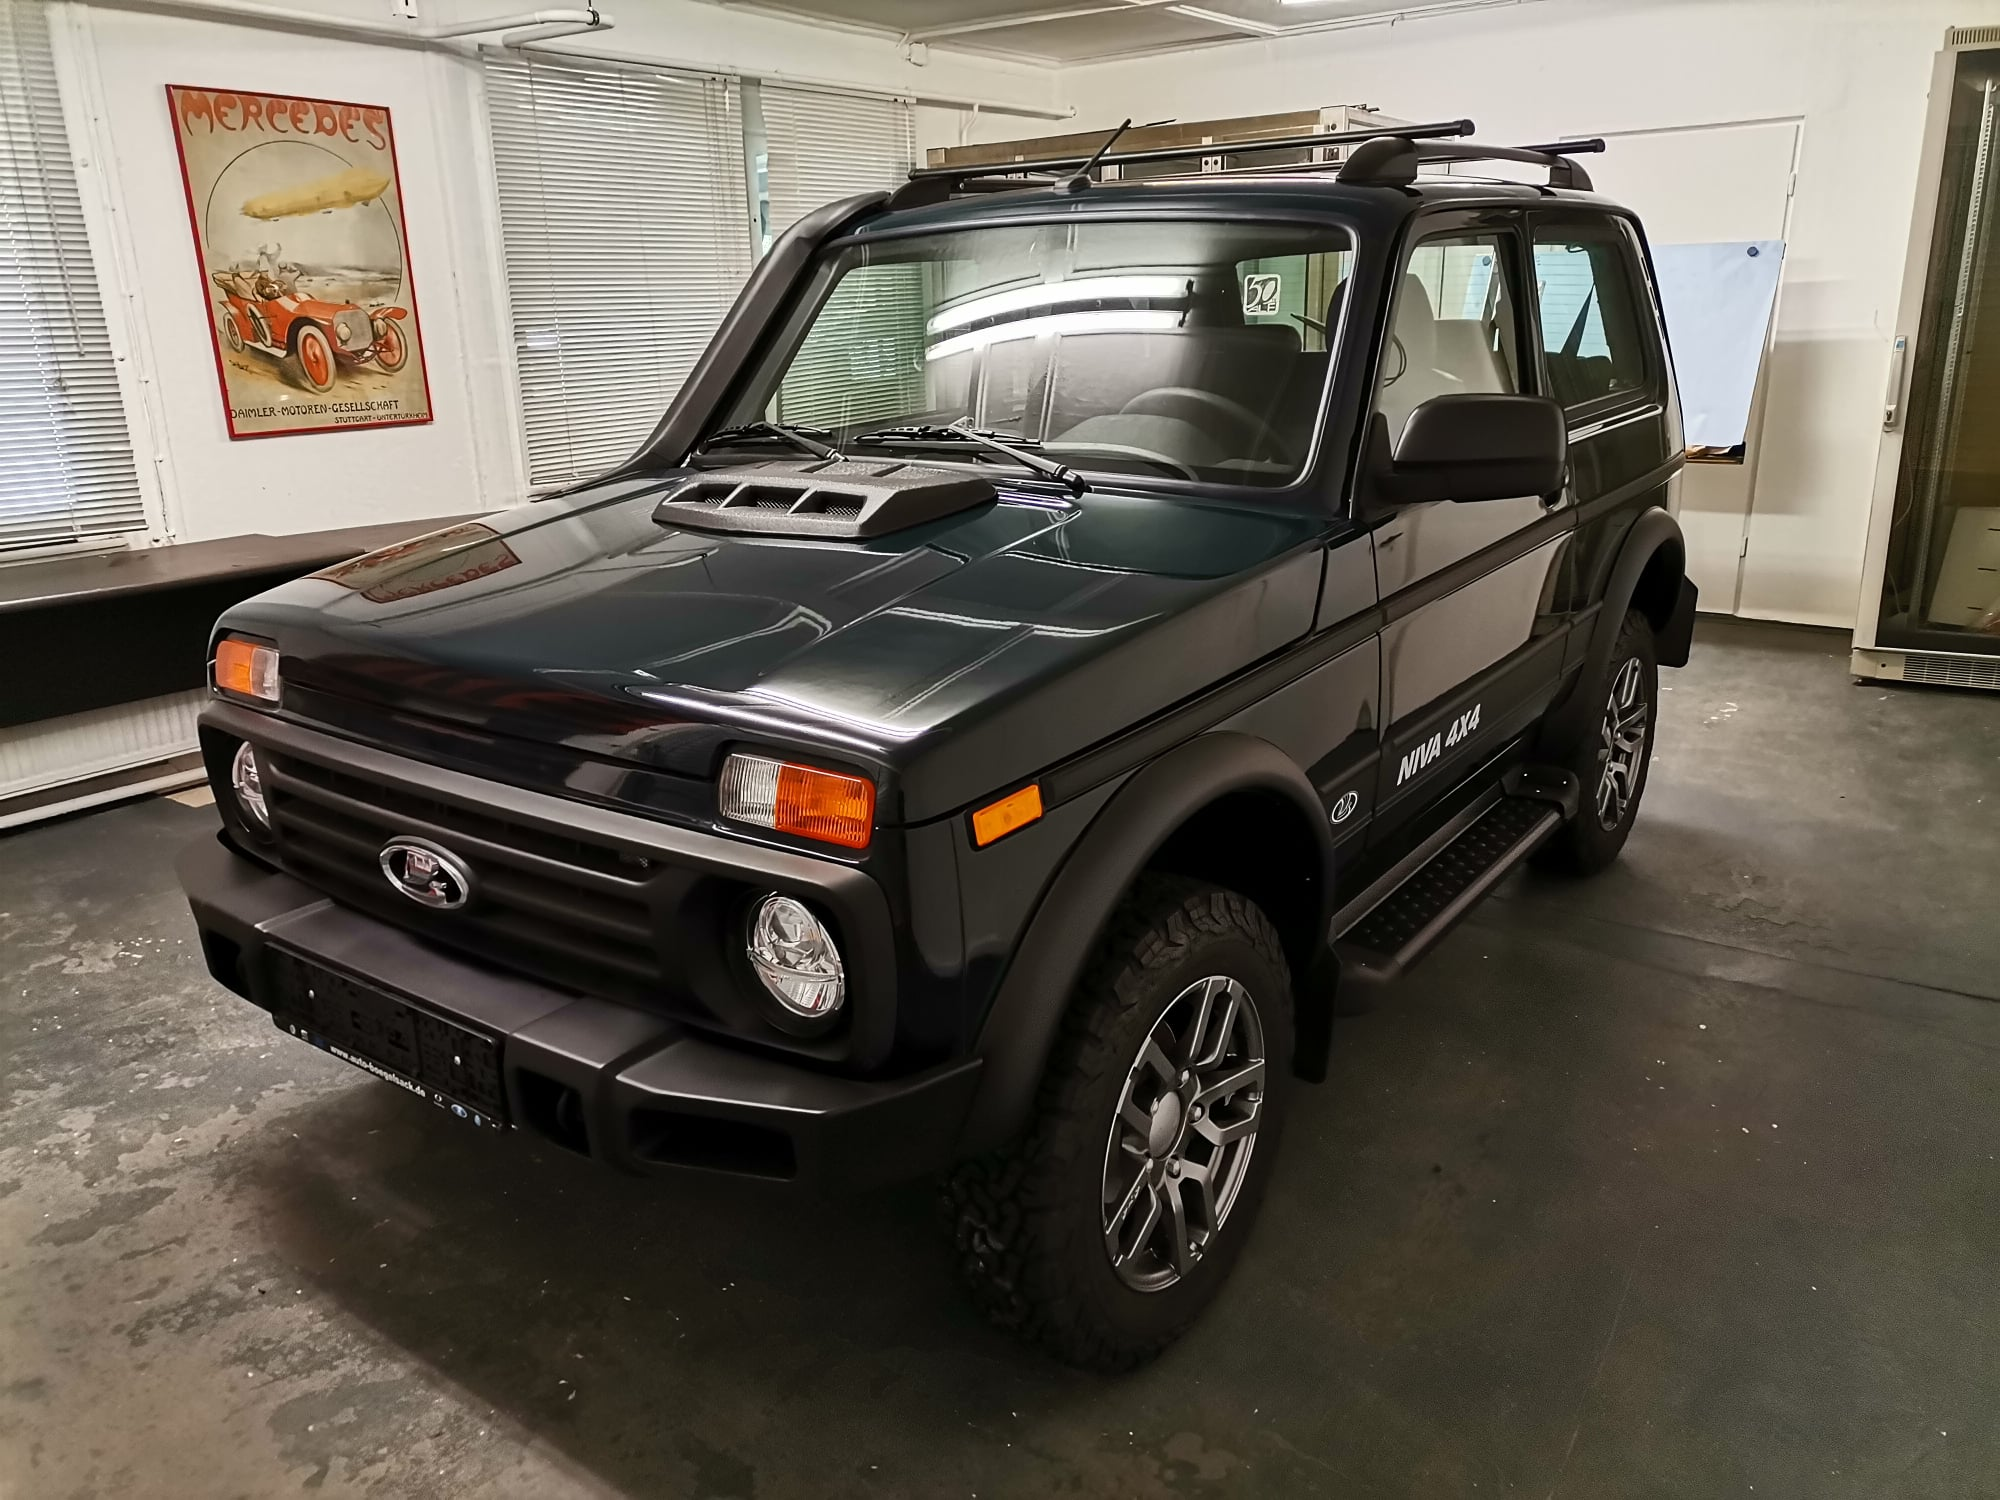 Partisan Motors has produced the first Lada Niva Legend in a special, limited batch of off-roaders designed for Germany. Russian carmaker AvtoVAZ had nothing to do with it.